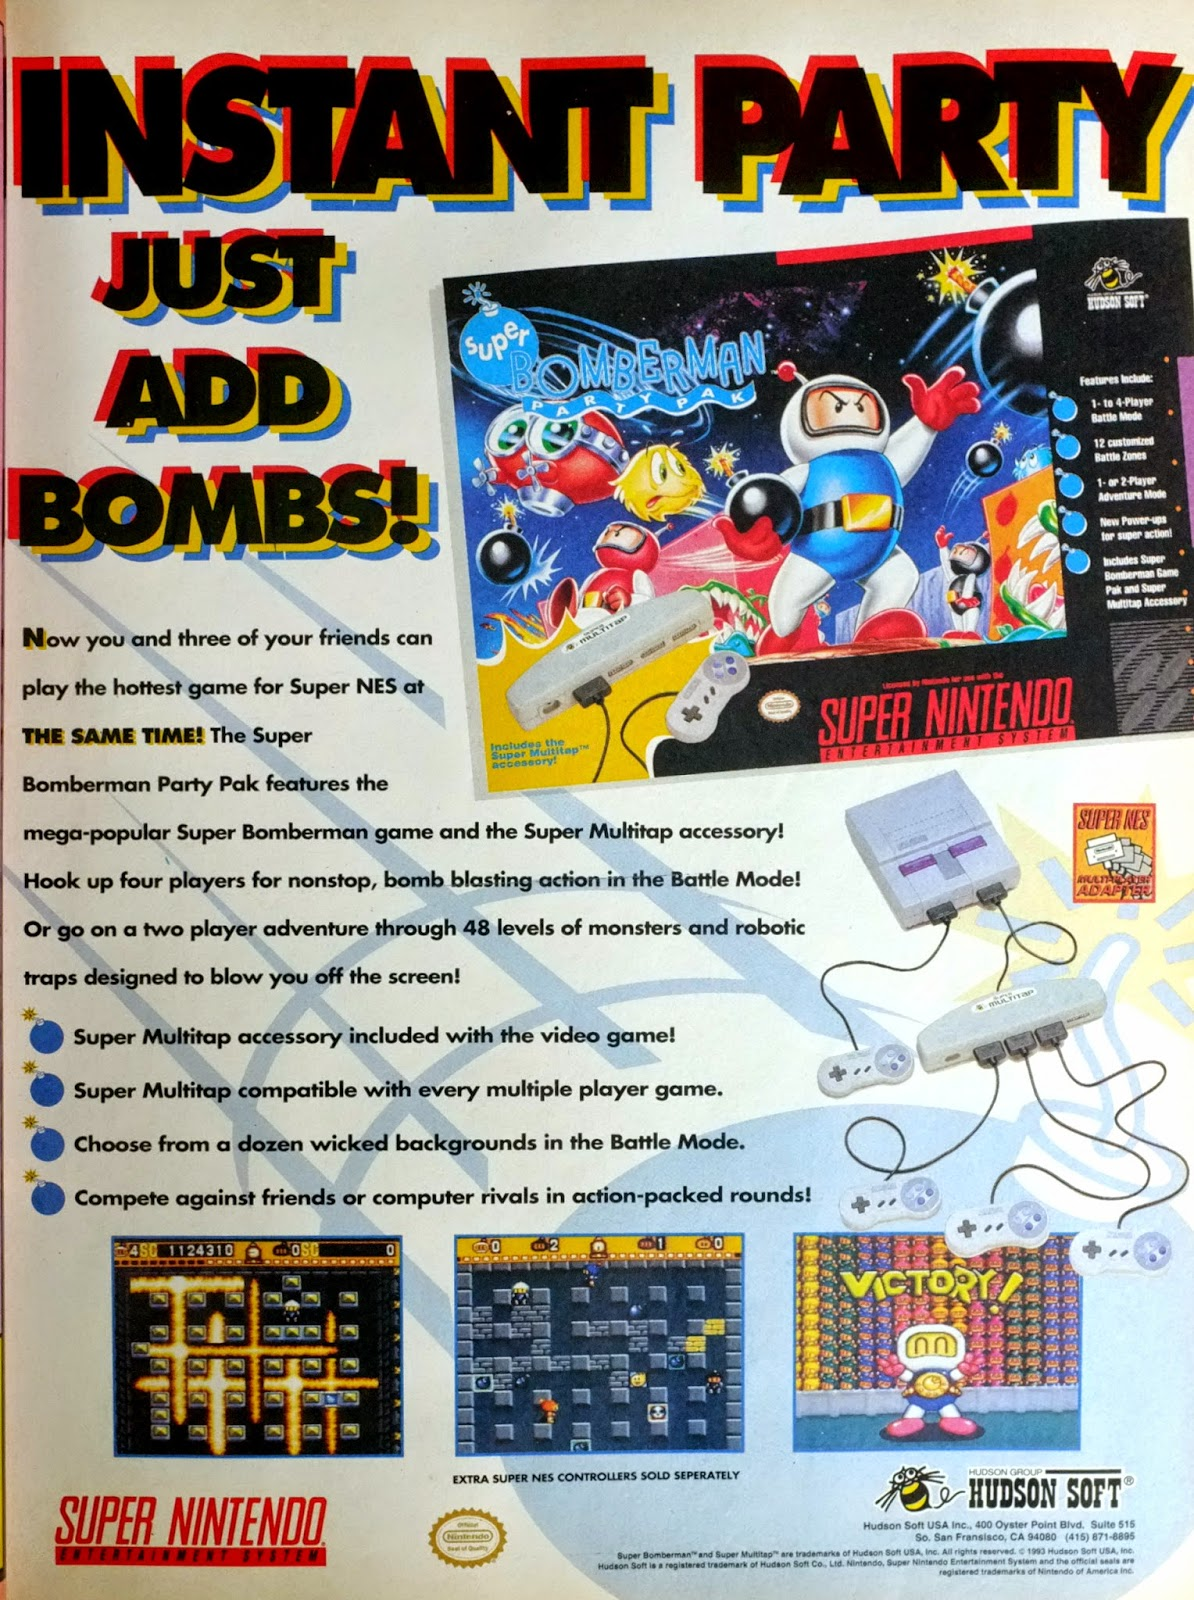 Super Bomberman Party Pak for Super NES advertisement